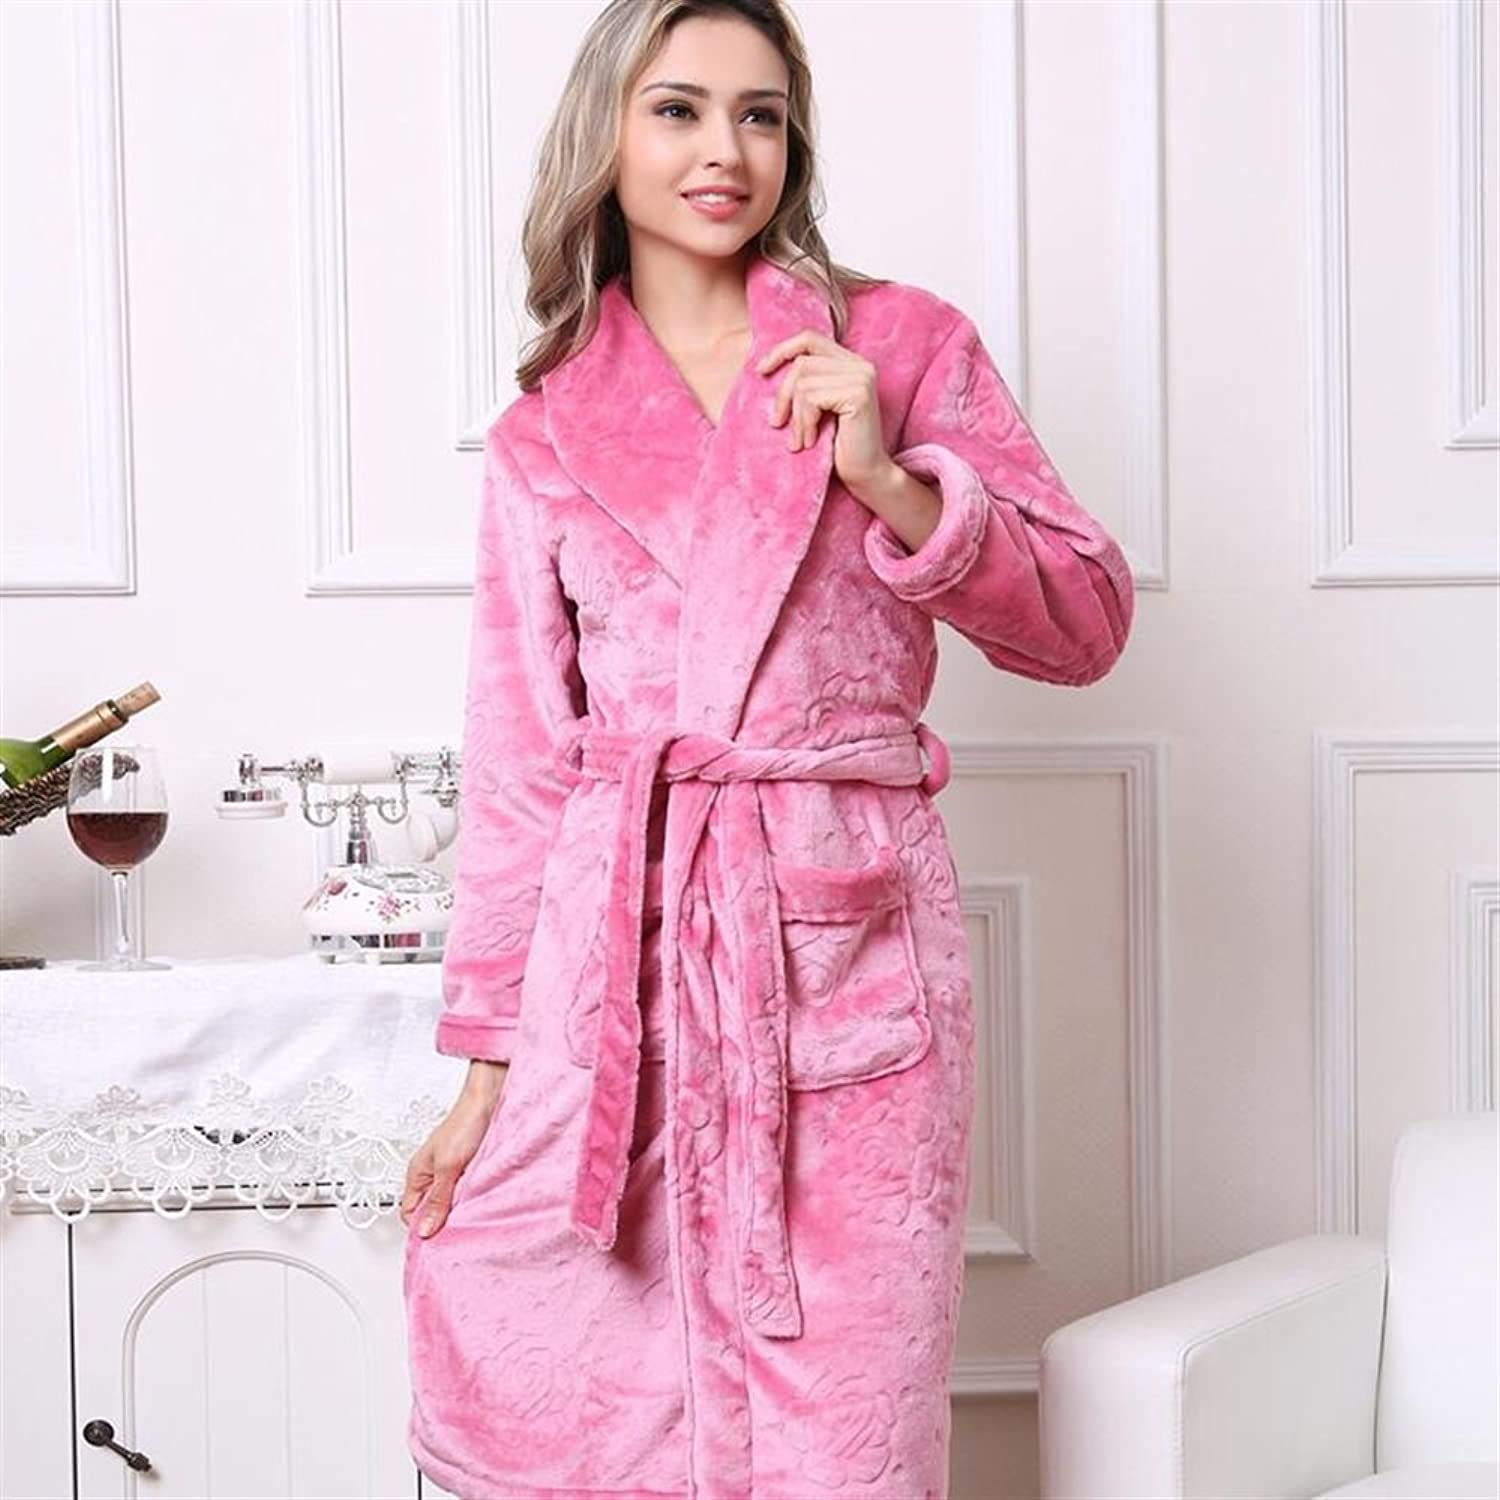 Soft Cozy Couple Flannel Printed Bathrobe Robe Nightgown Pajamas Dressing Gowns Bathrobe for Women (color   Rosy, Size   XL)